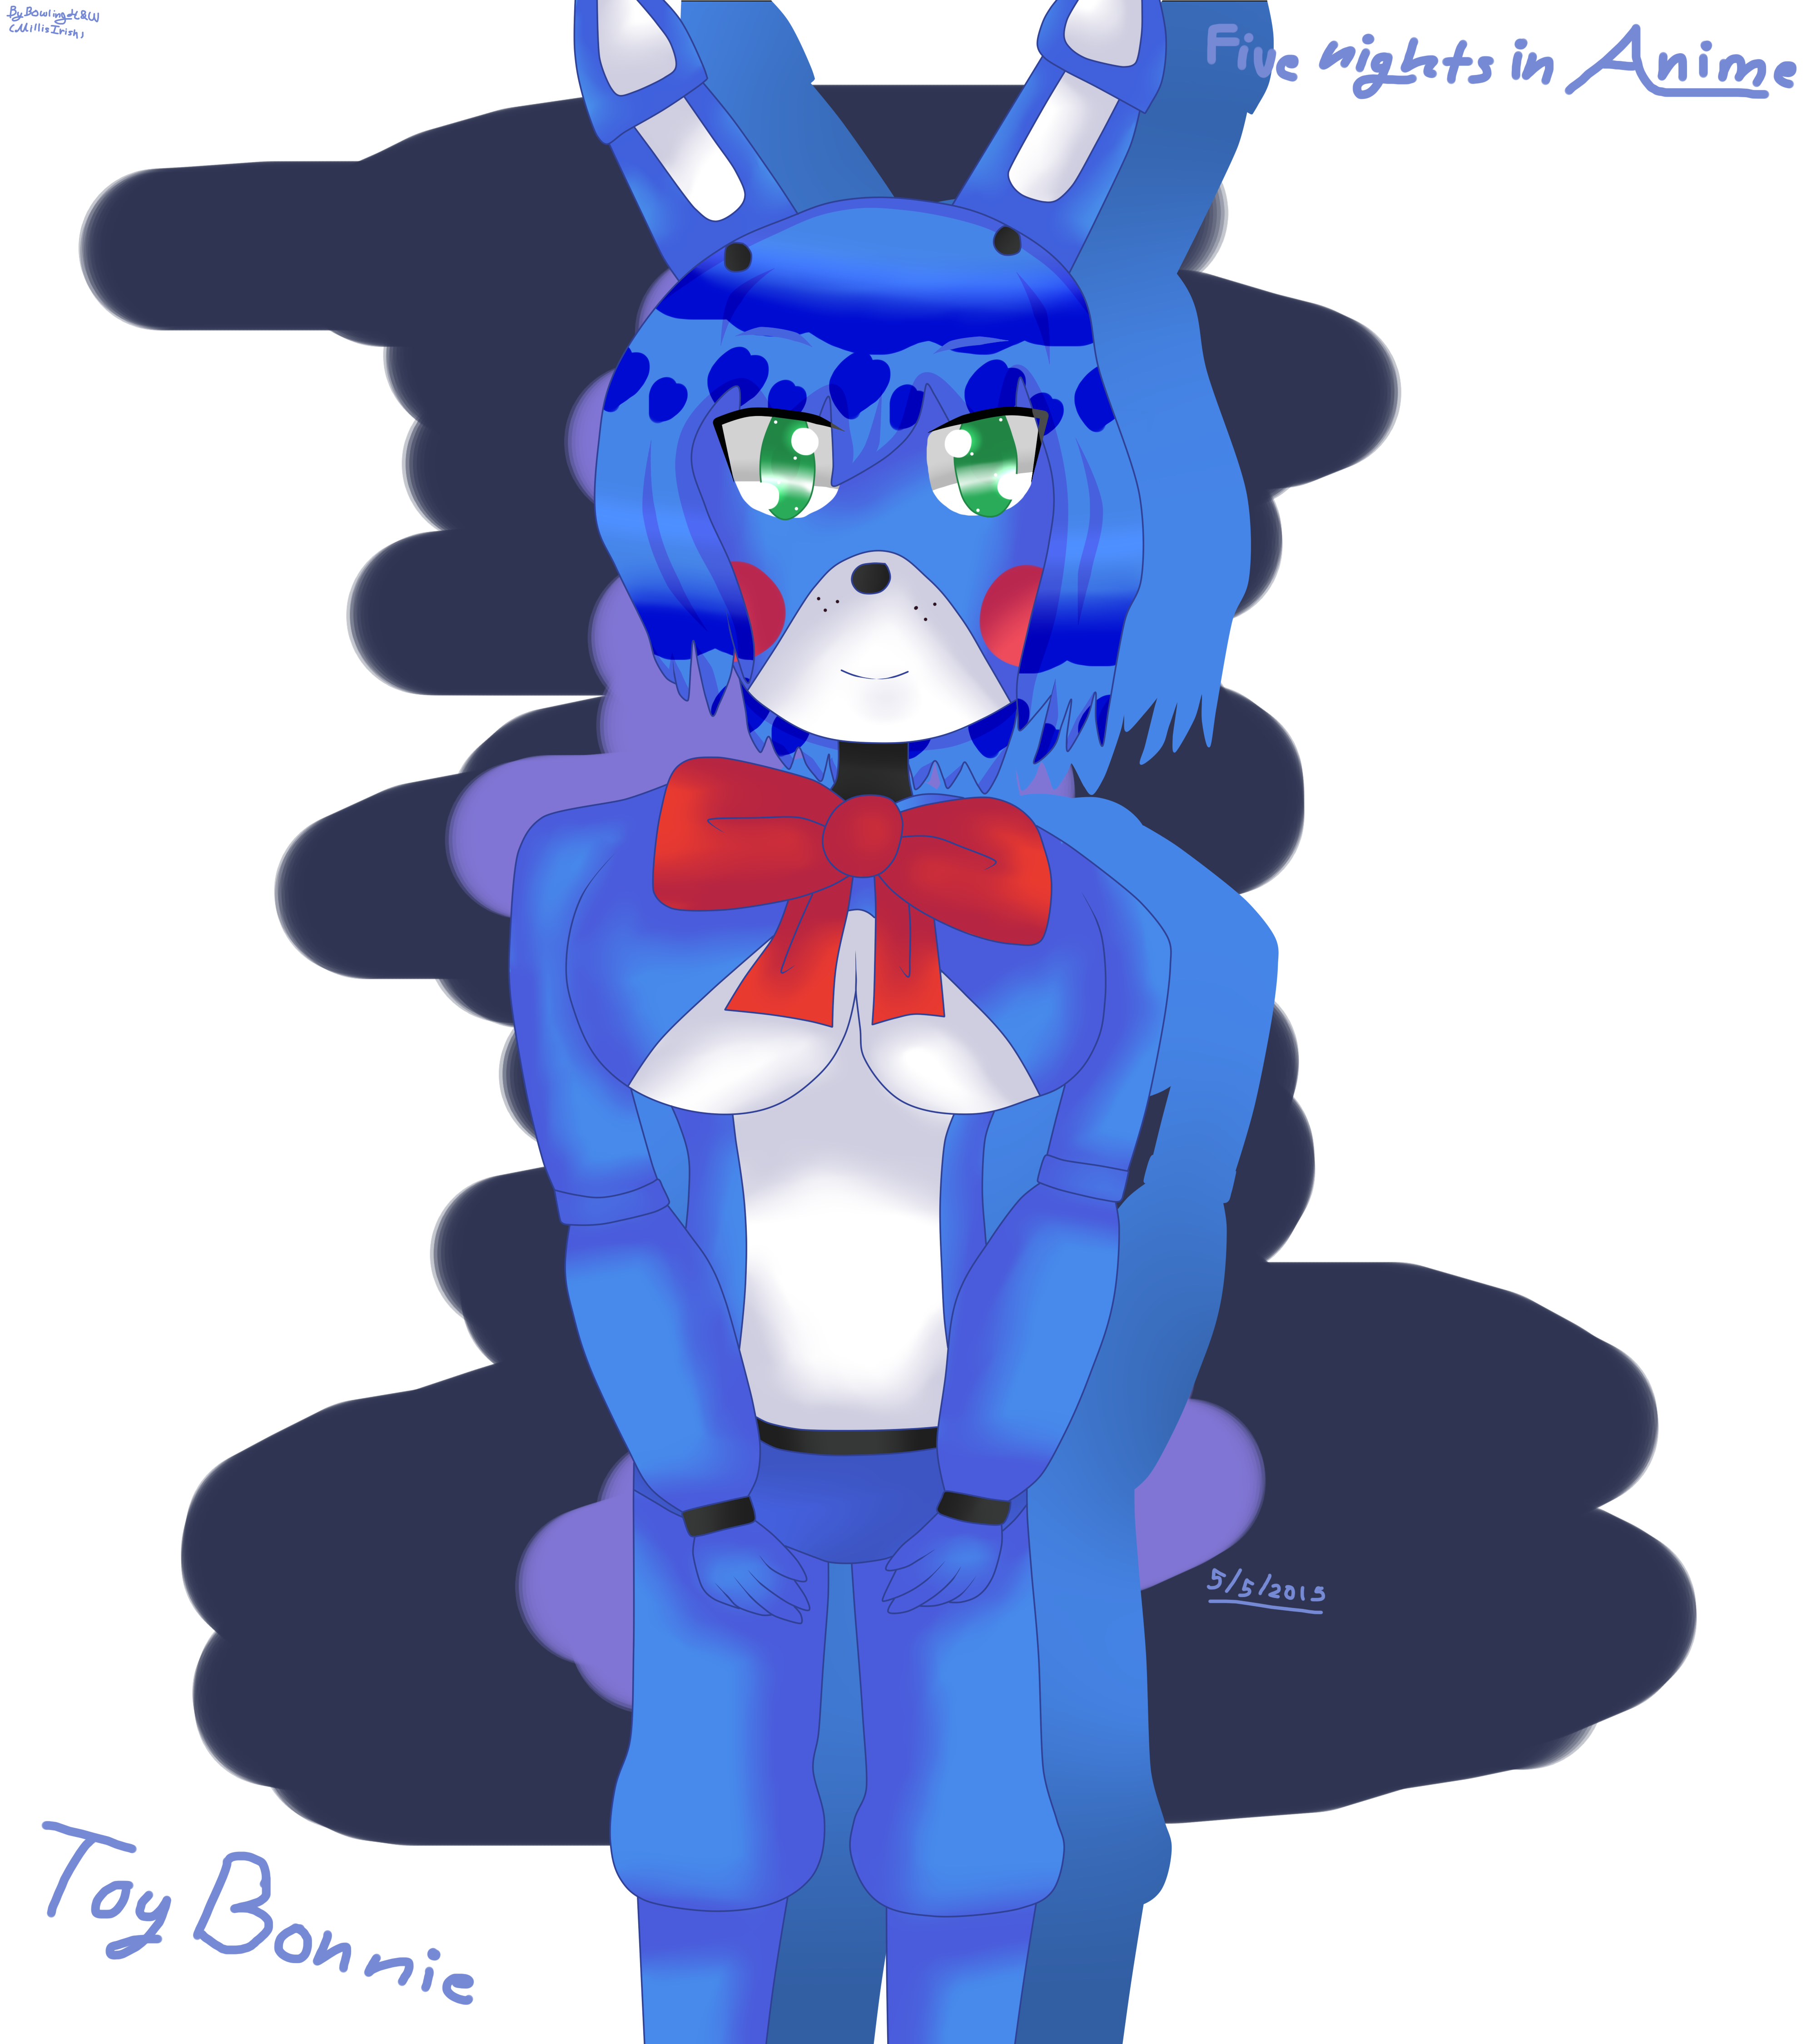 BowlingMillisIrish Toy Bonnie Five Nights In Anime Mouse Drawing By